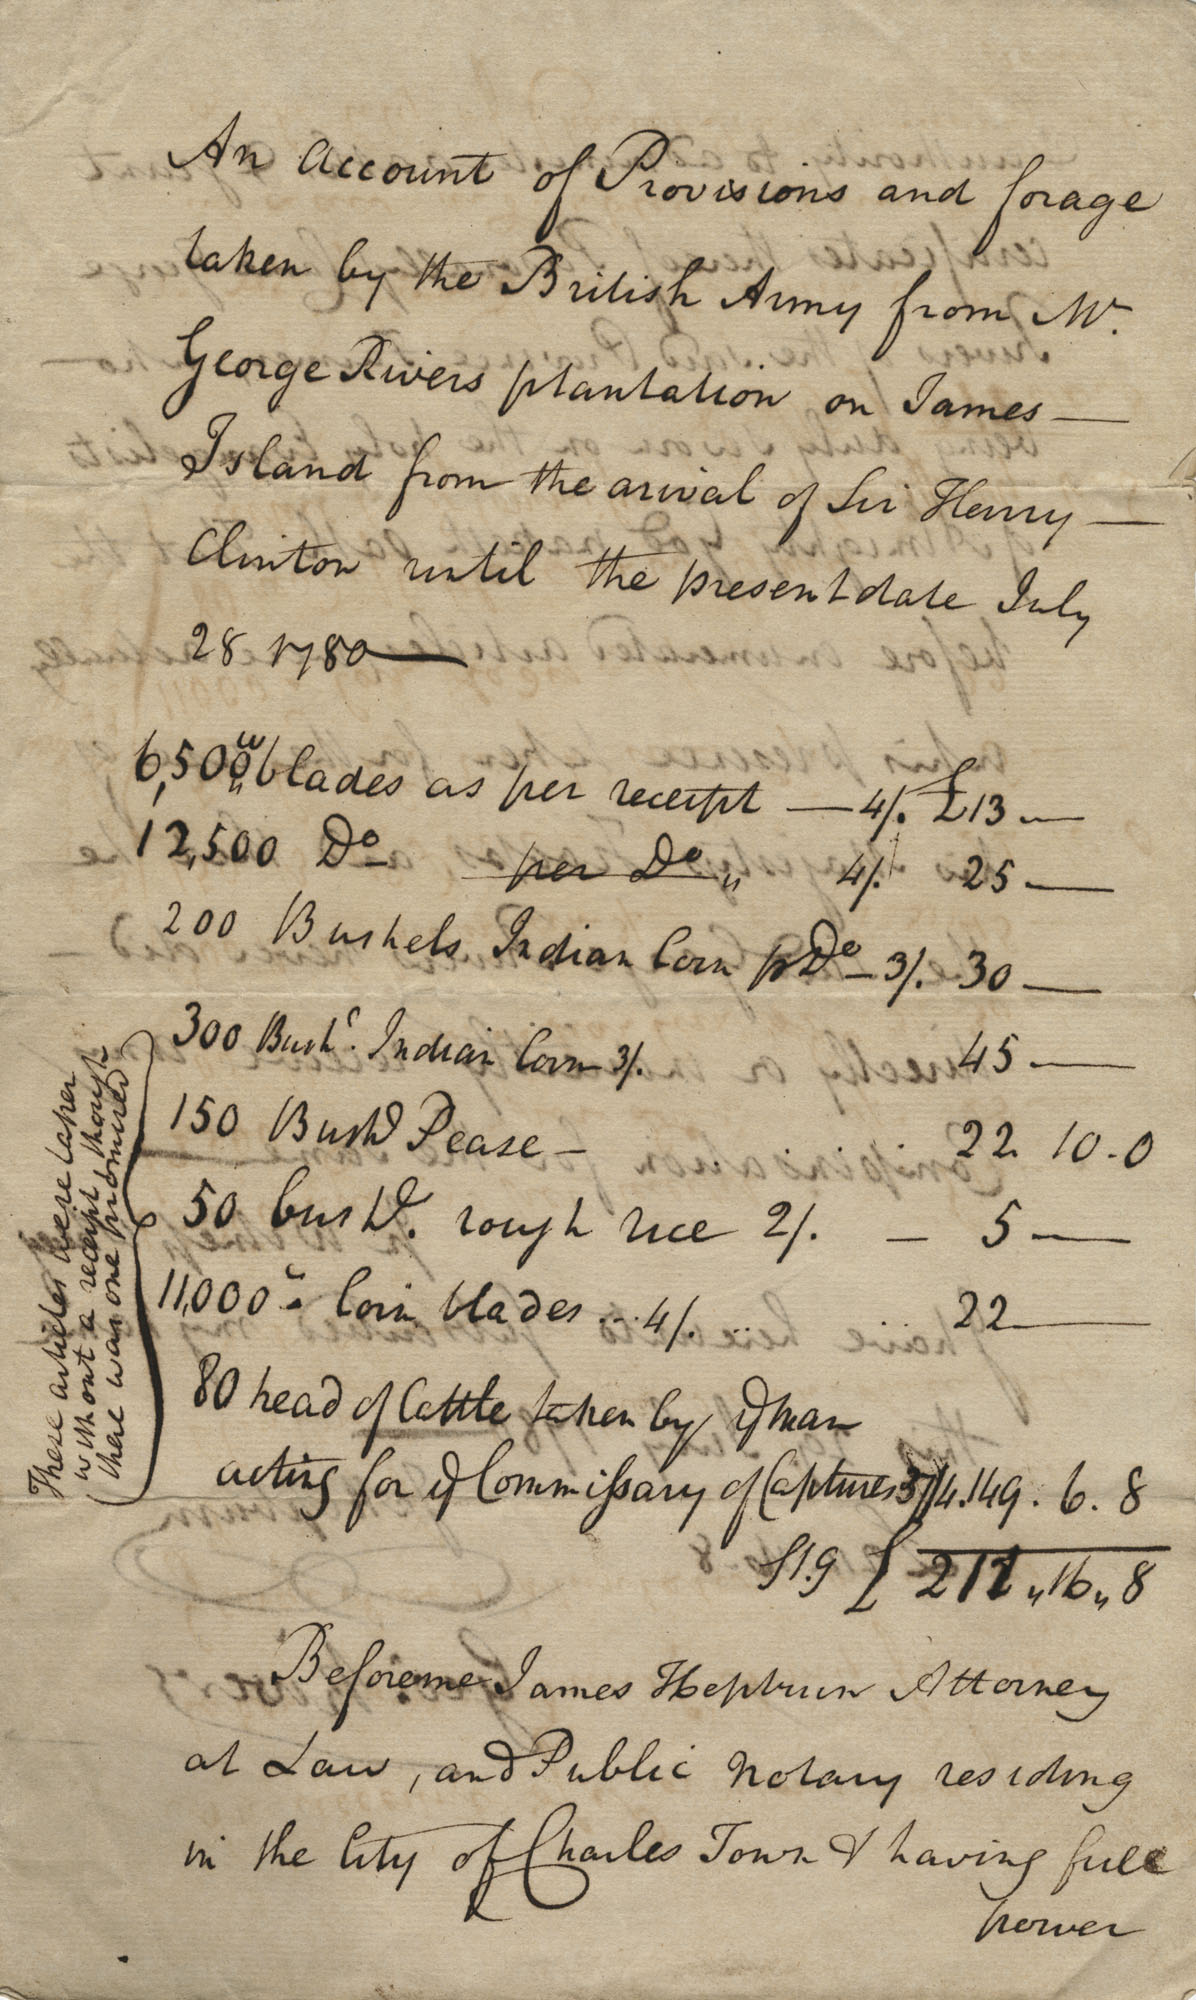 An account of provisions and forage taken by the British Army from W. George Rivers plantation on James Island, July 29, 1780